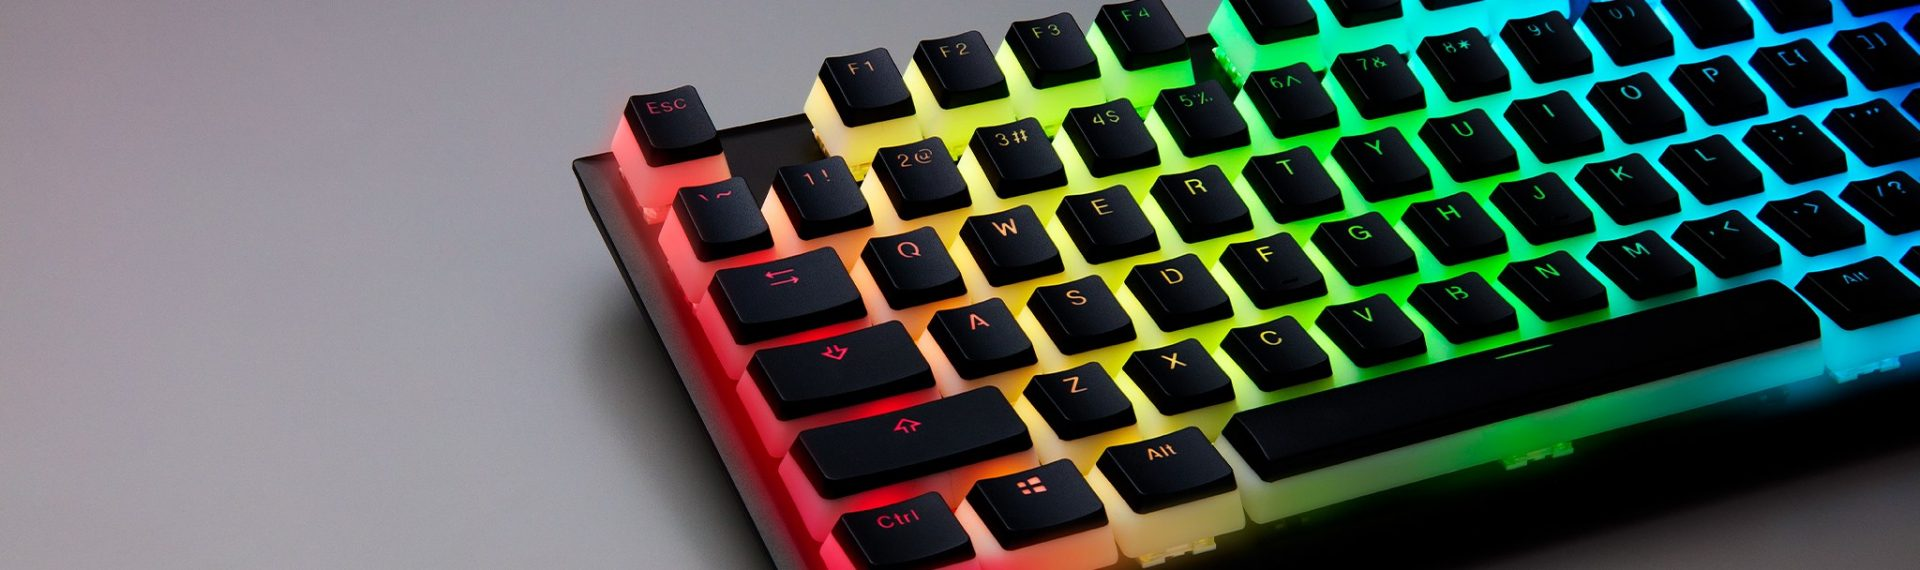 HyperX Double Shot PBT Keycaps Are Sexy As Hell